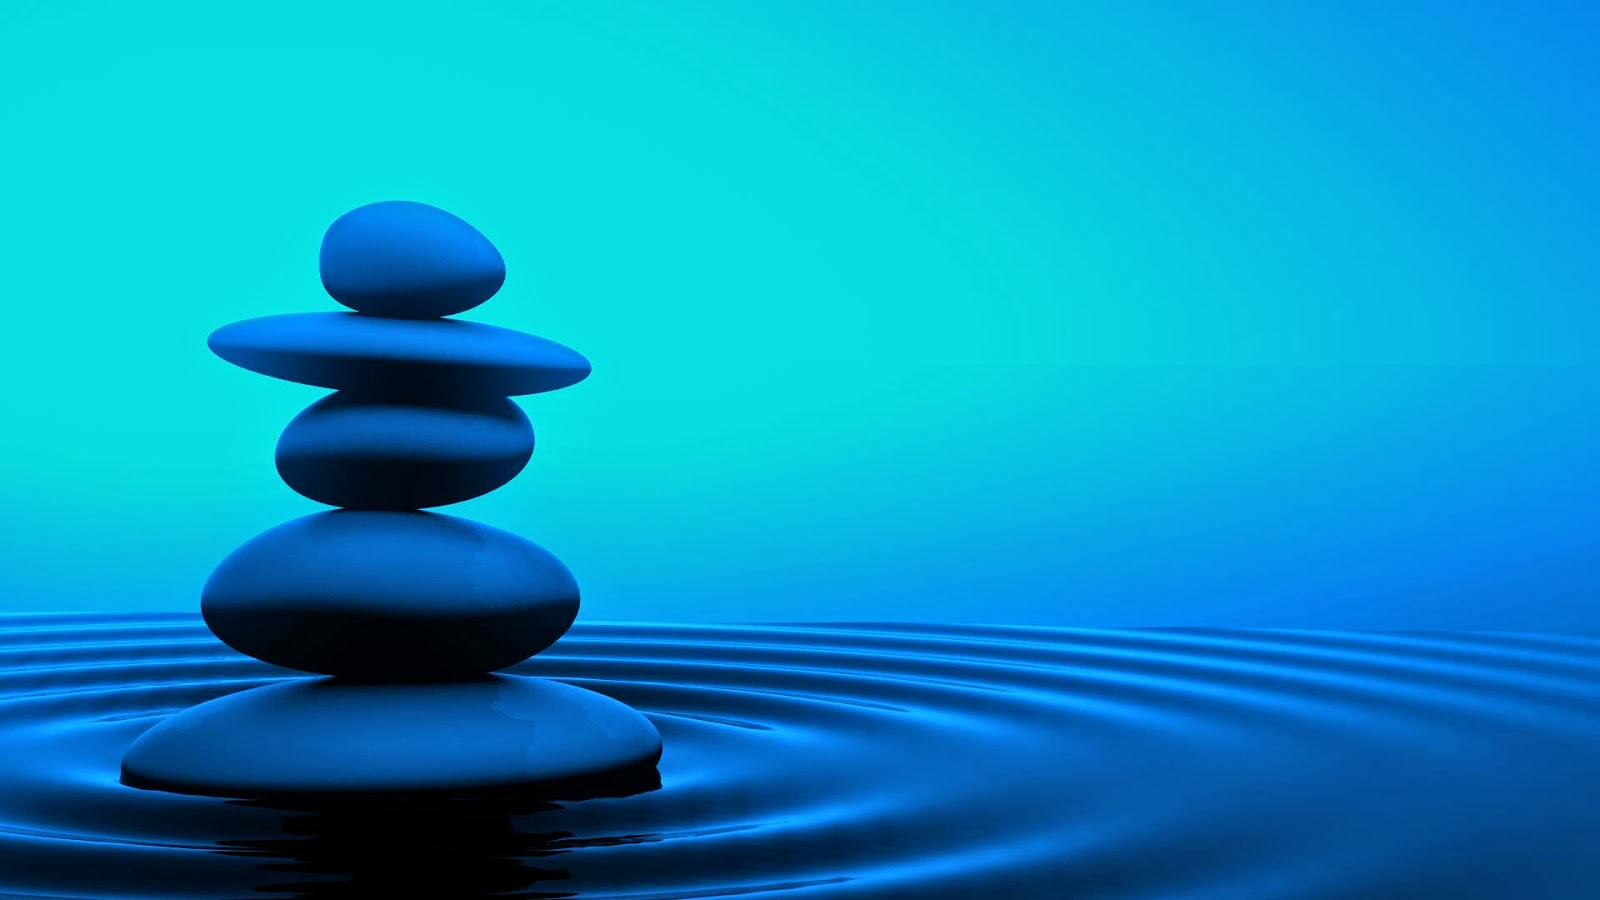 Chinese Zen meditation pictures 1080p Full HD widescreen Wallpapers 1600x900